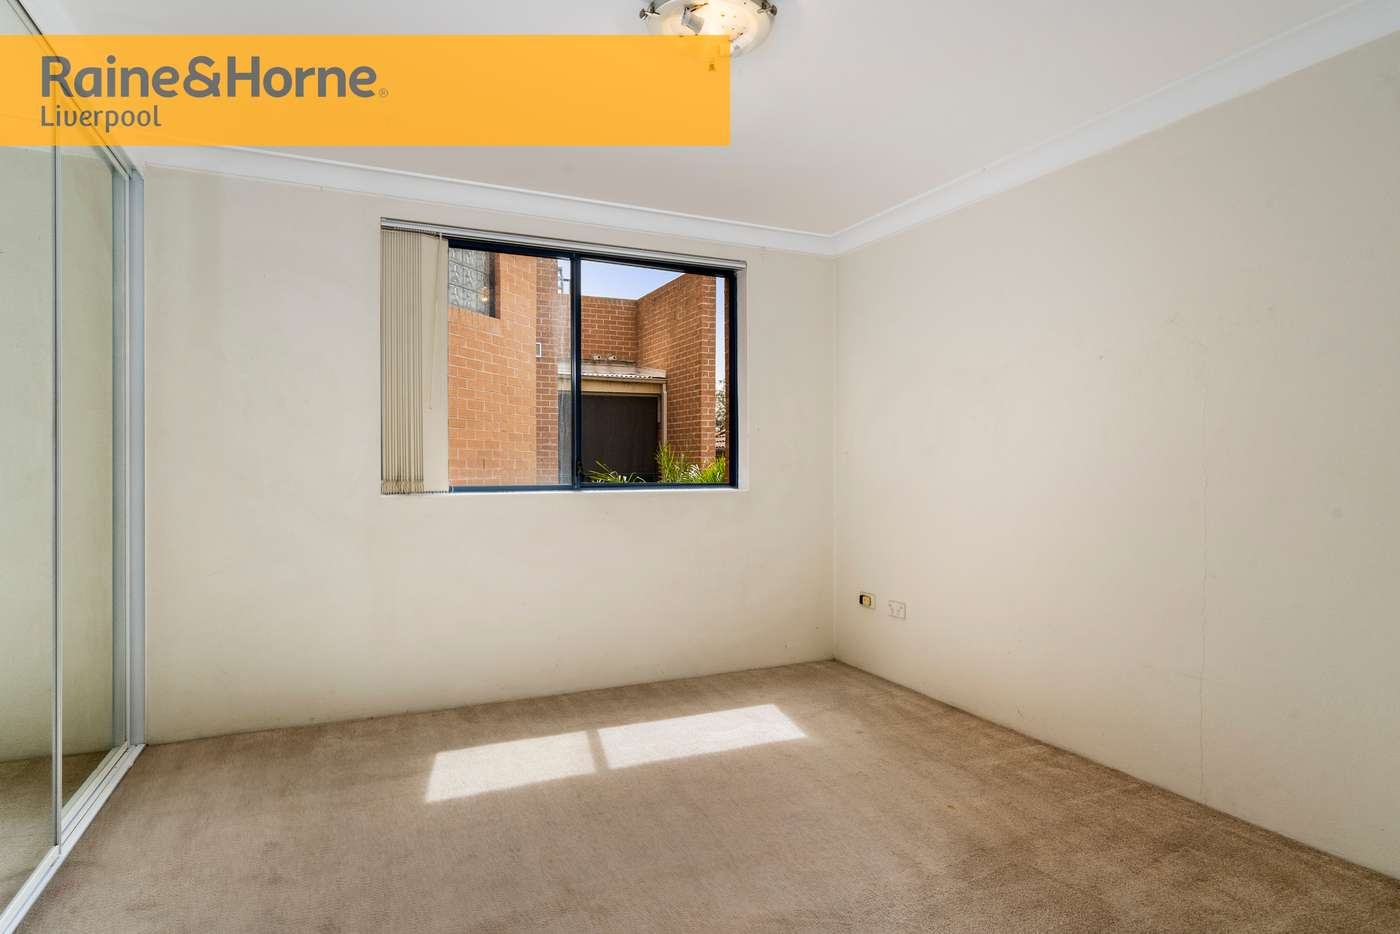 Fifth view of Homely unit listing, 5/49 Bathurst Street, Liverpool NSW 2170